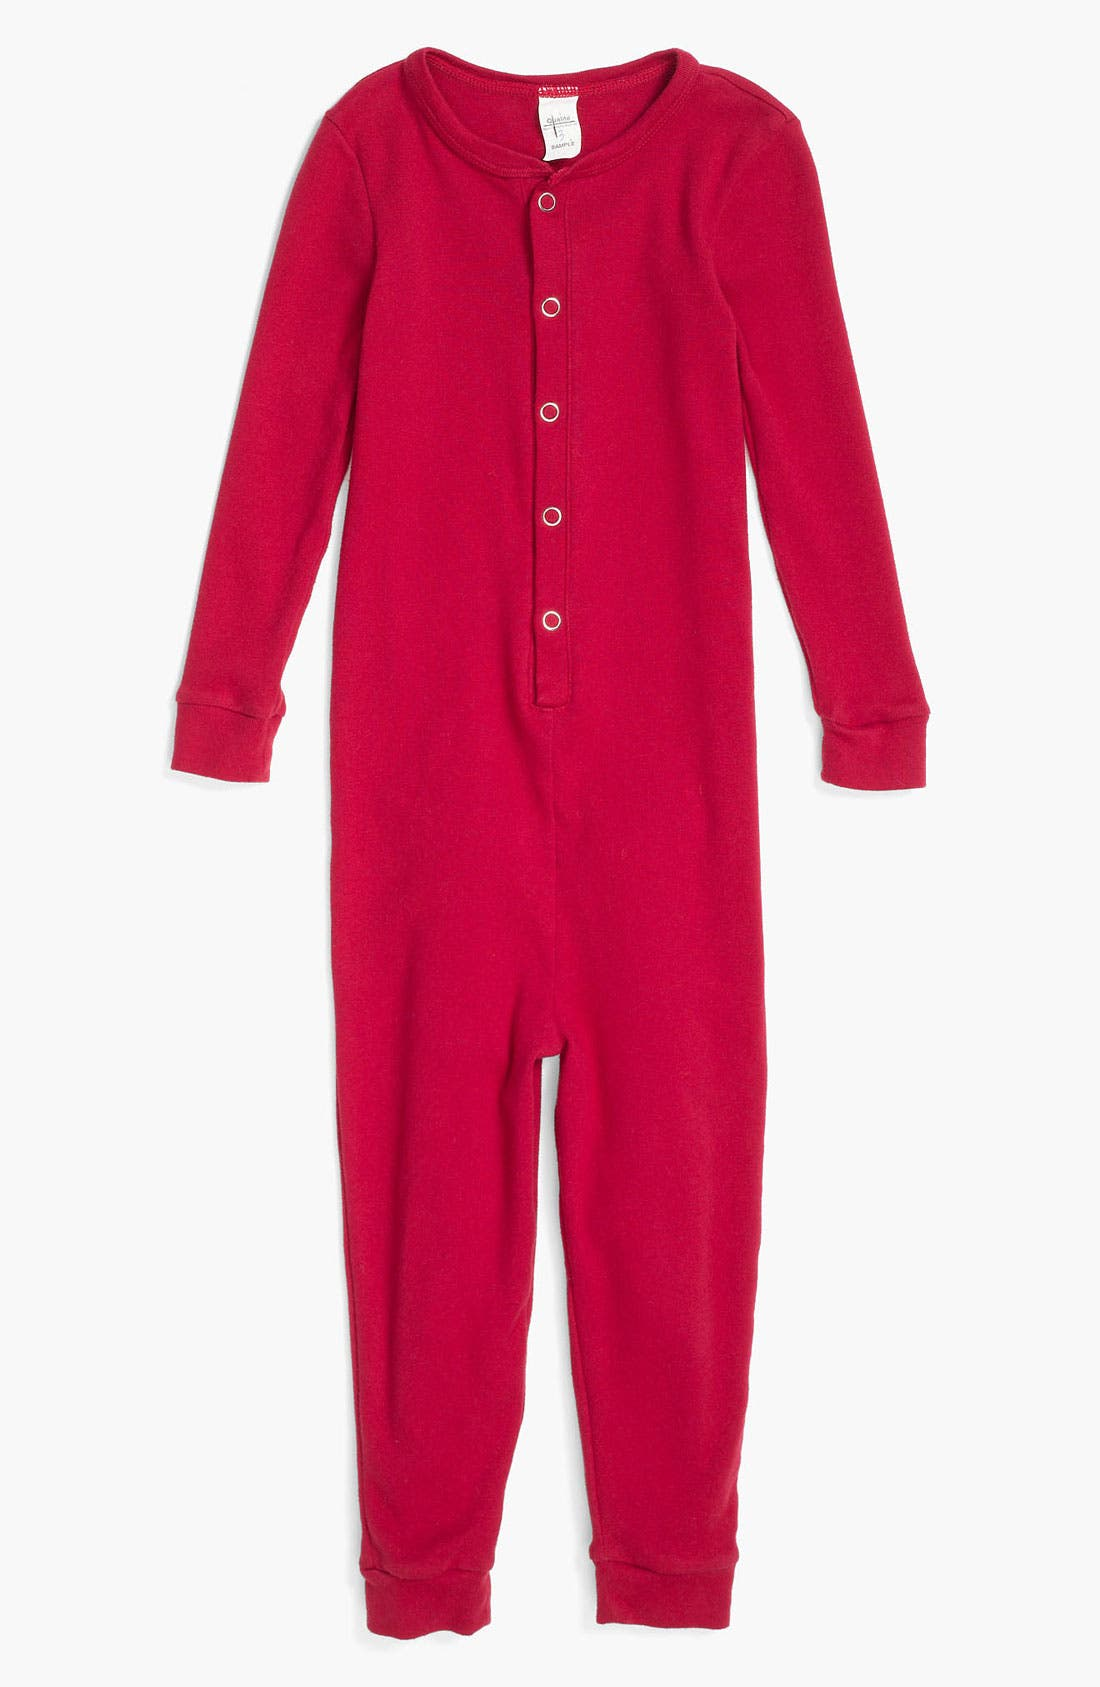 Main Image - Tucker + Tate 'Union Suit' Pajamas (Toddler)